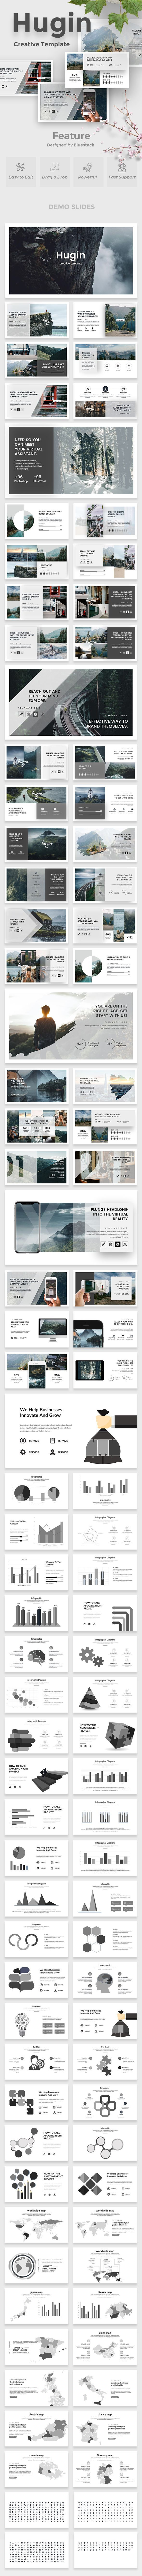 277 best PowerPoint Keynote Presentation Templates images on ...